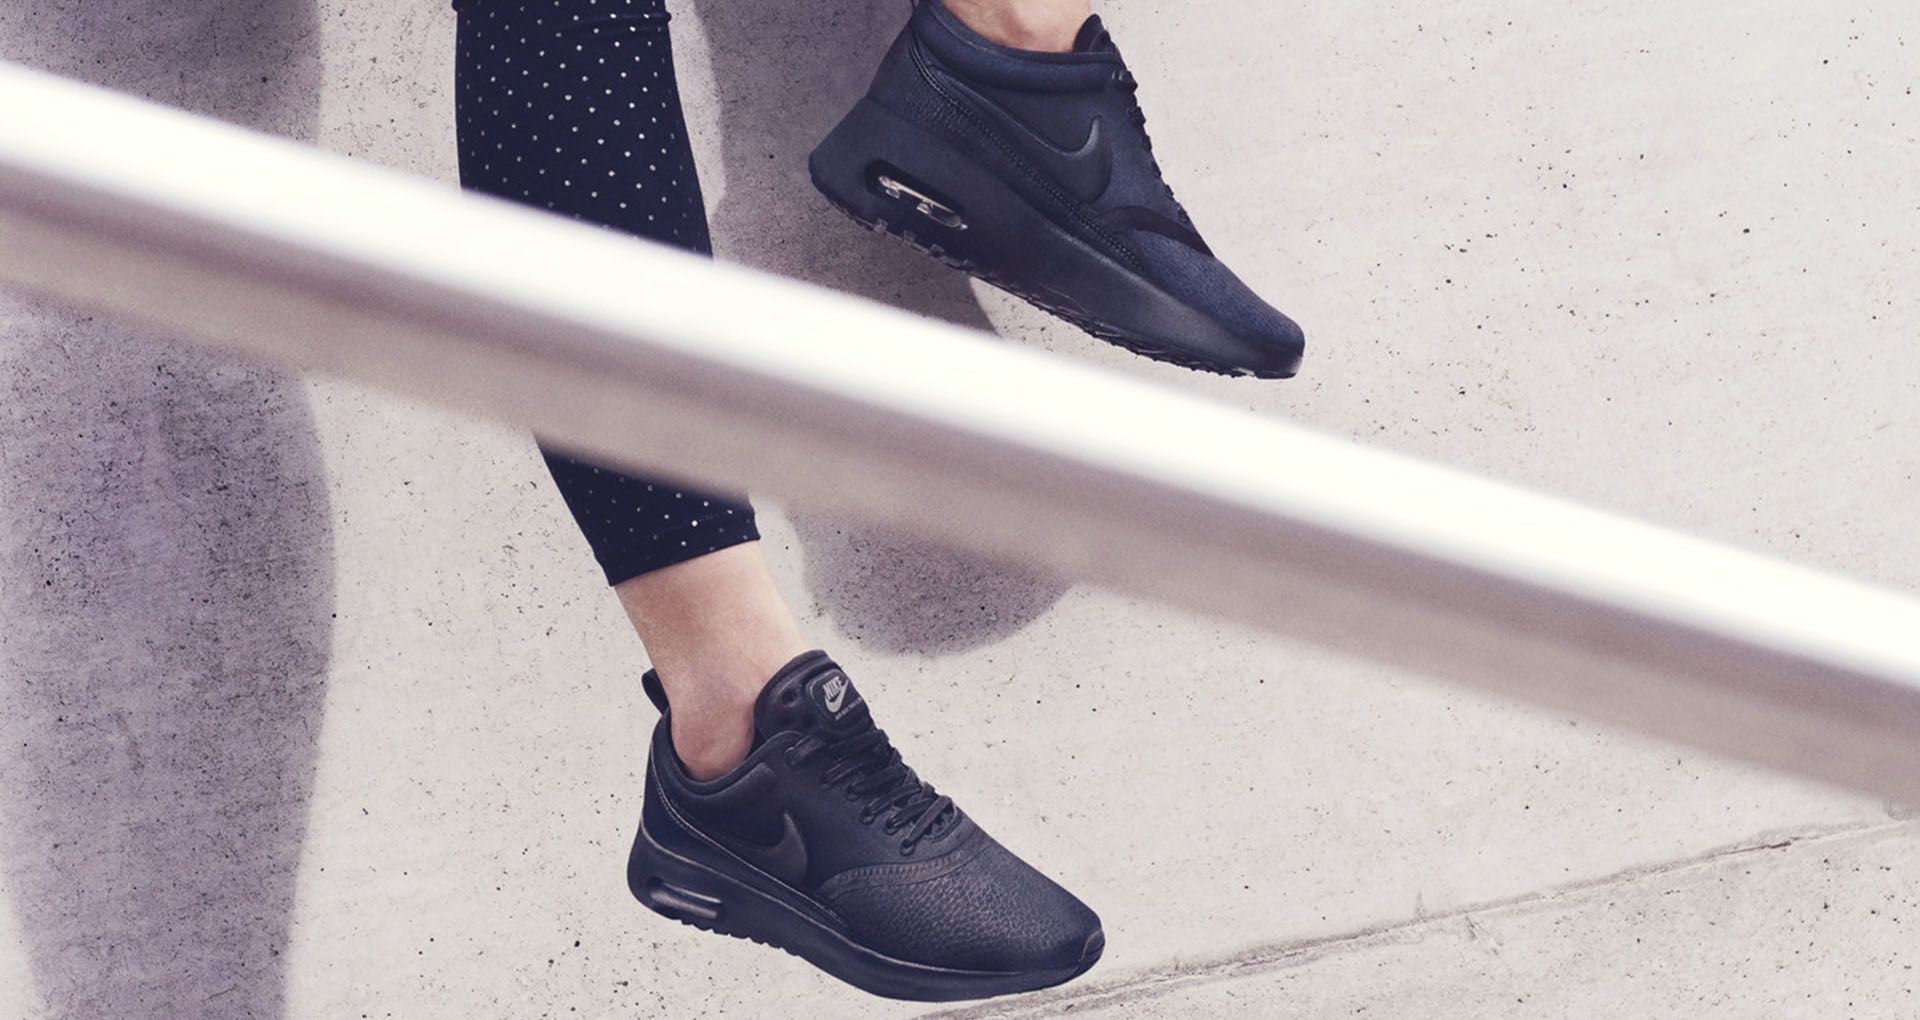 reputable site ee0aa adcdf WMNS AIR MAX THEA PREMIUM. NIKE BEAUTIFUL X POWERFUL